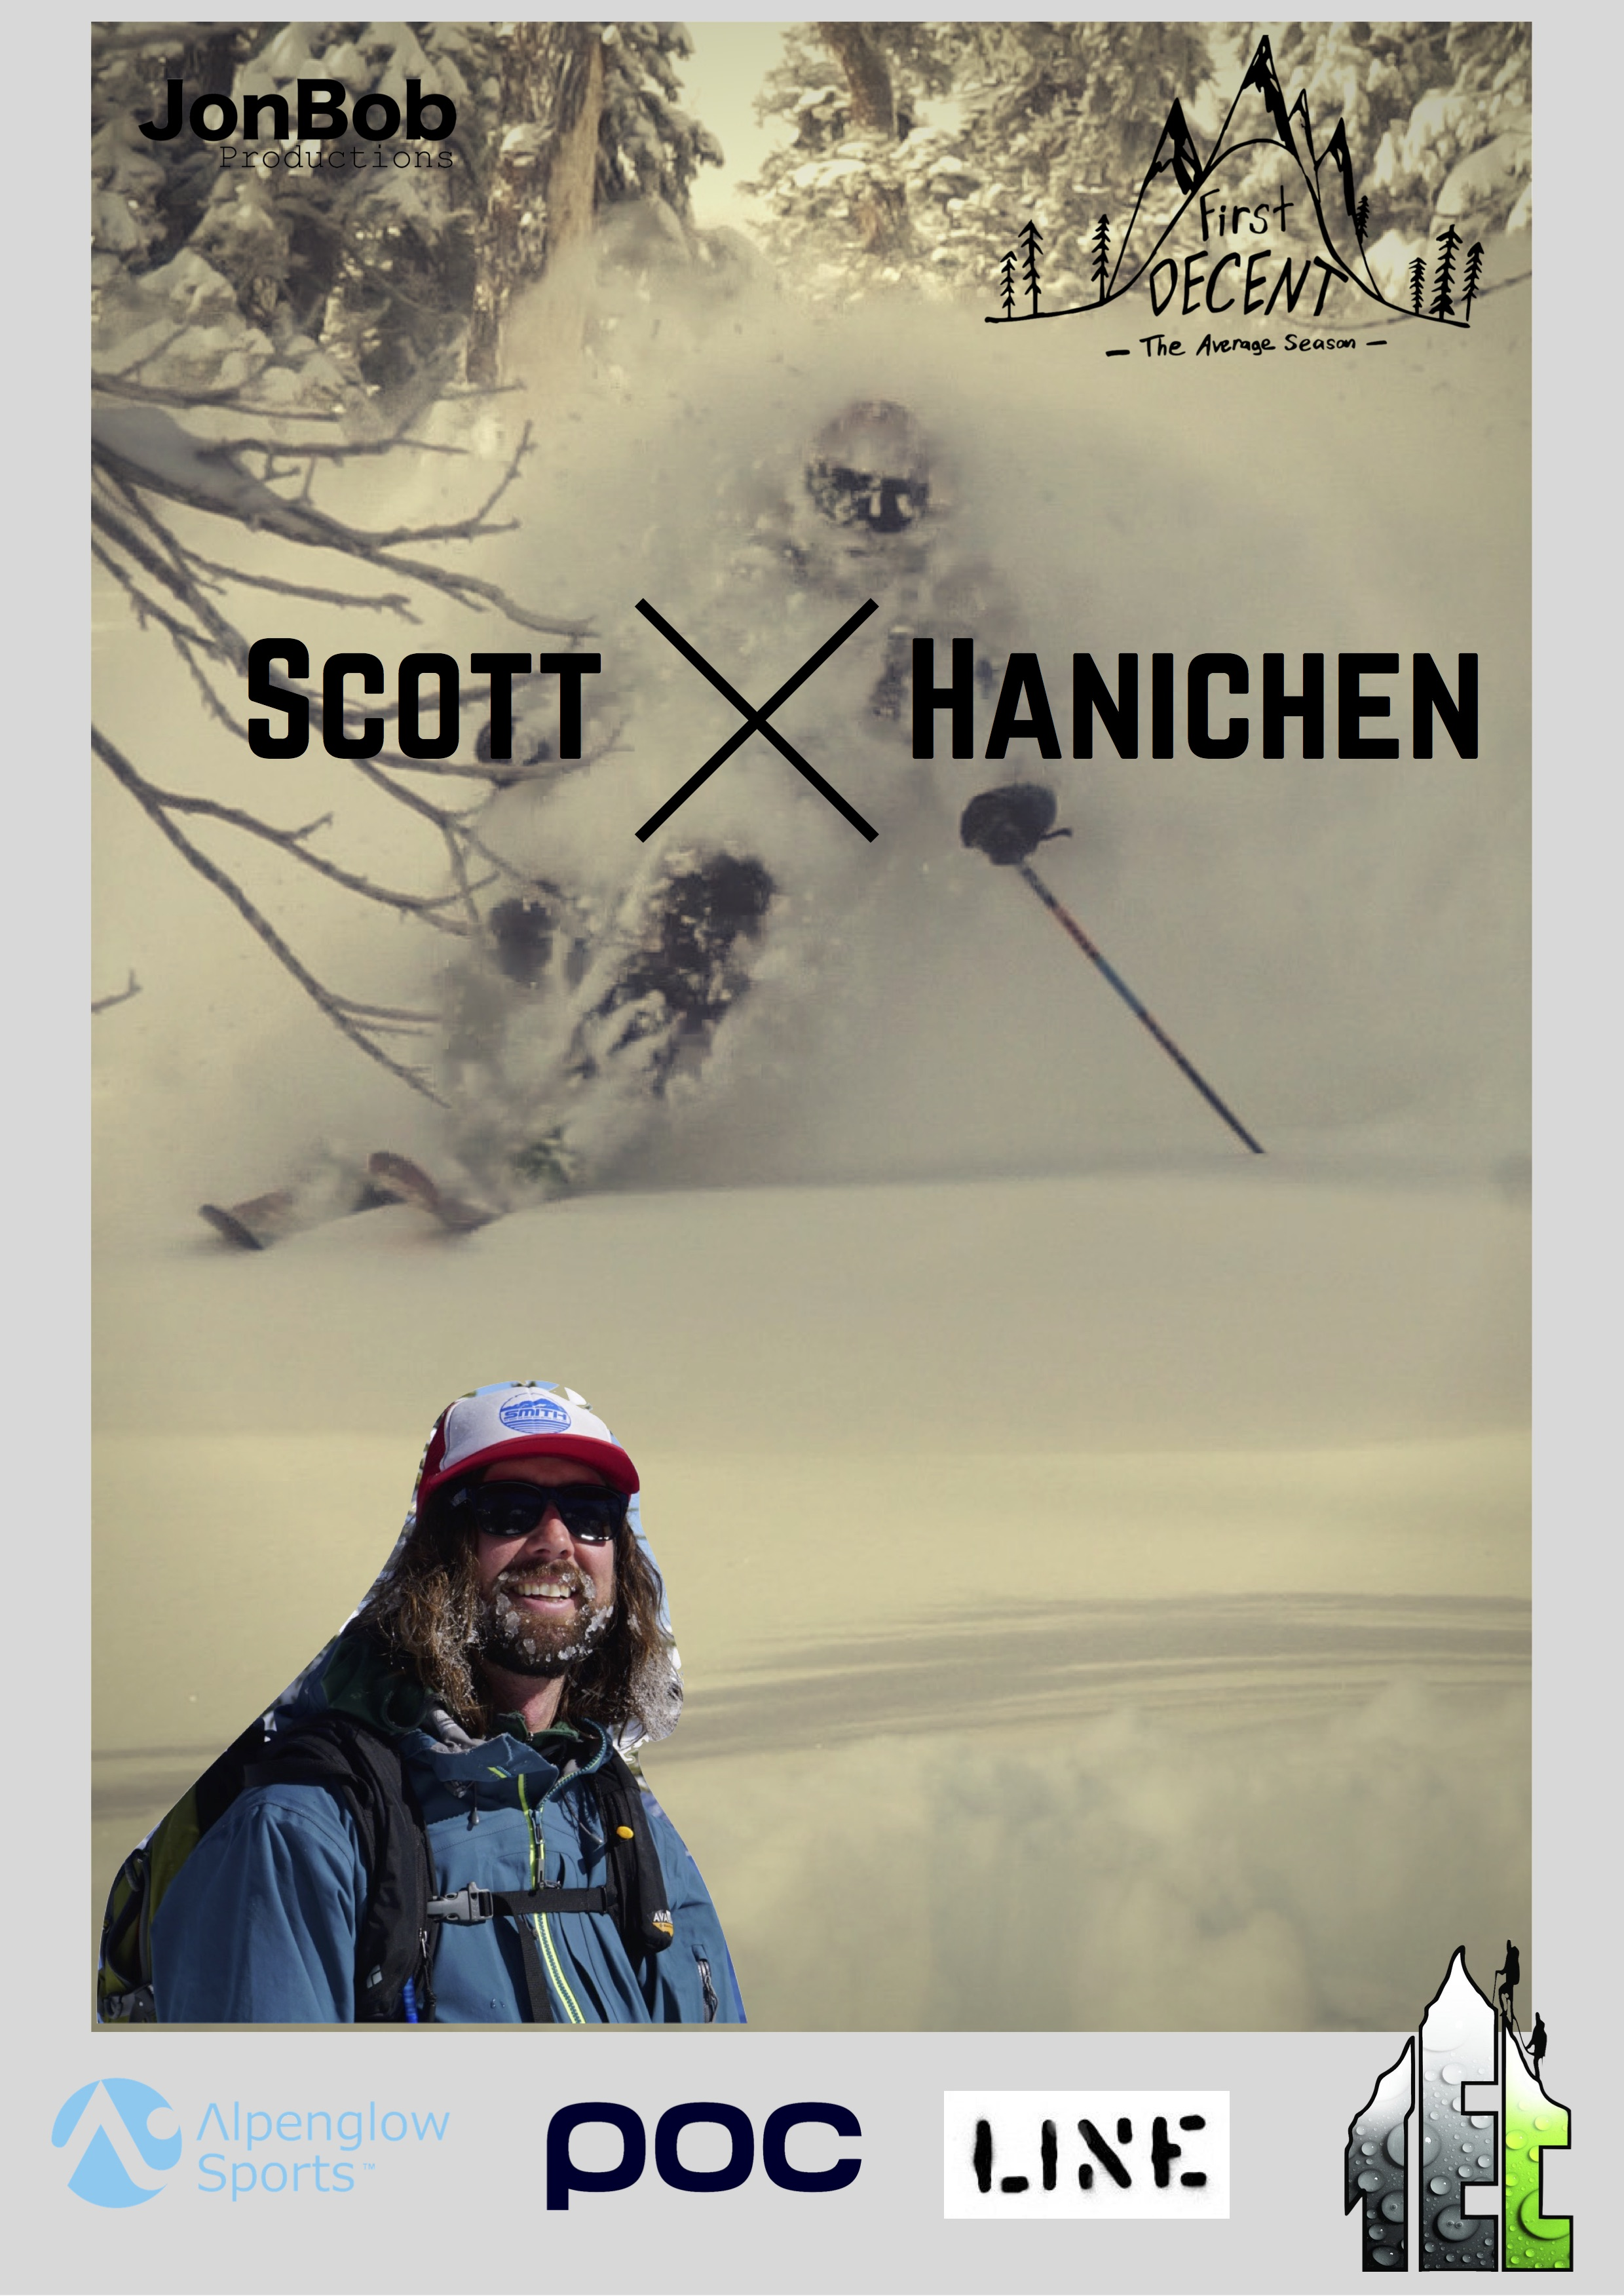 Scott First Decent Poster.jpg